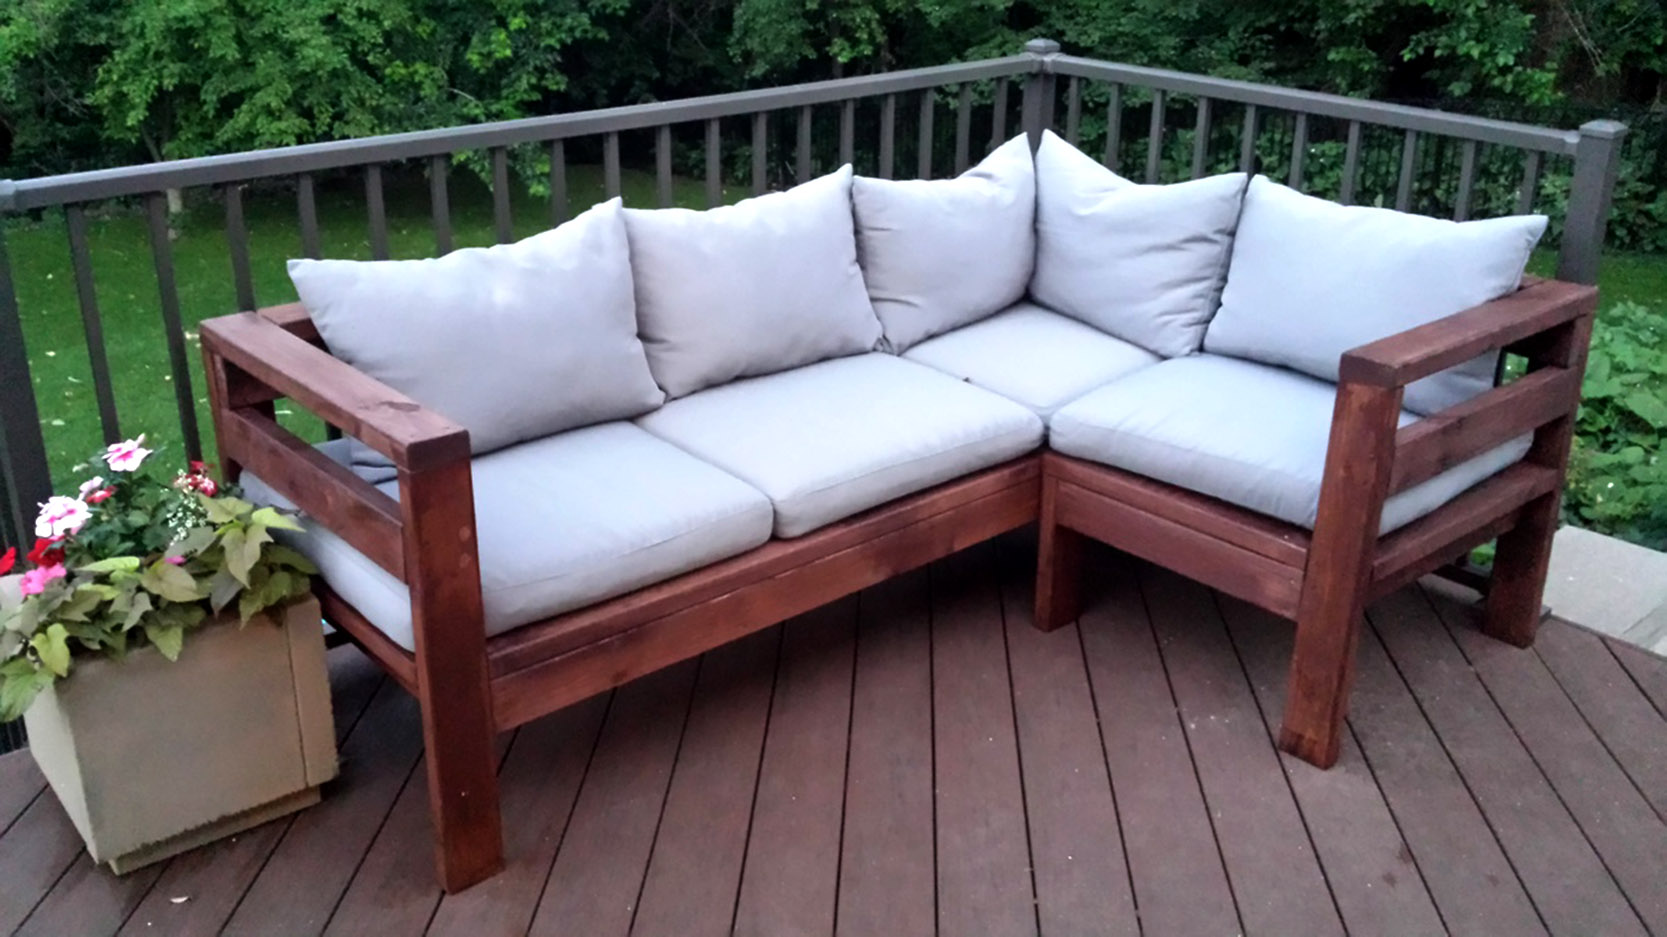 DIY Outdoor Sectional Sofa Plans Ana White